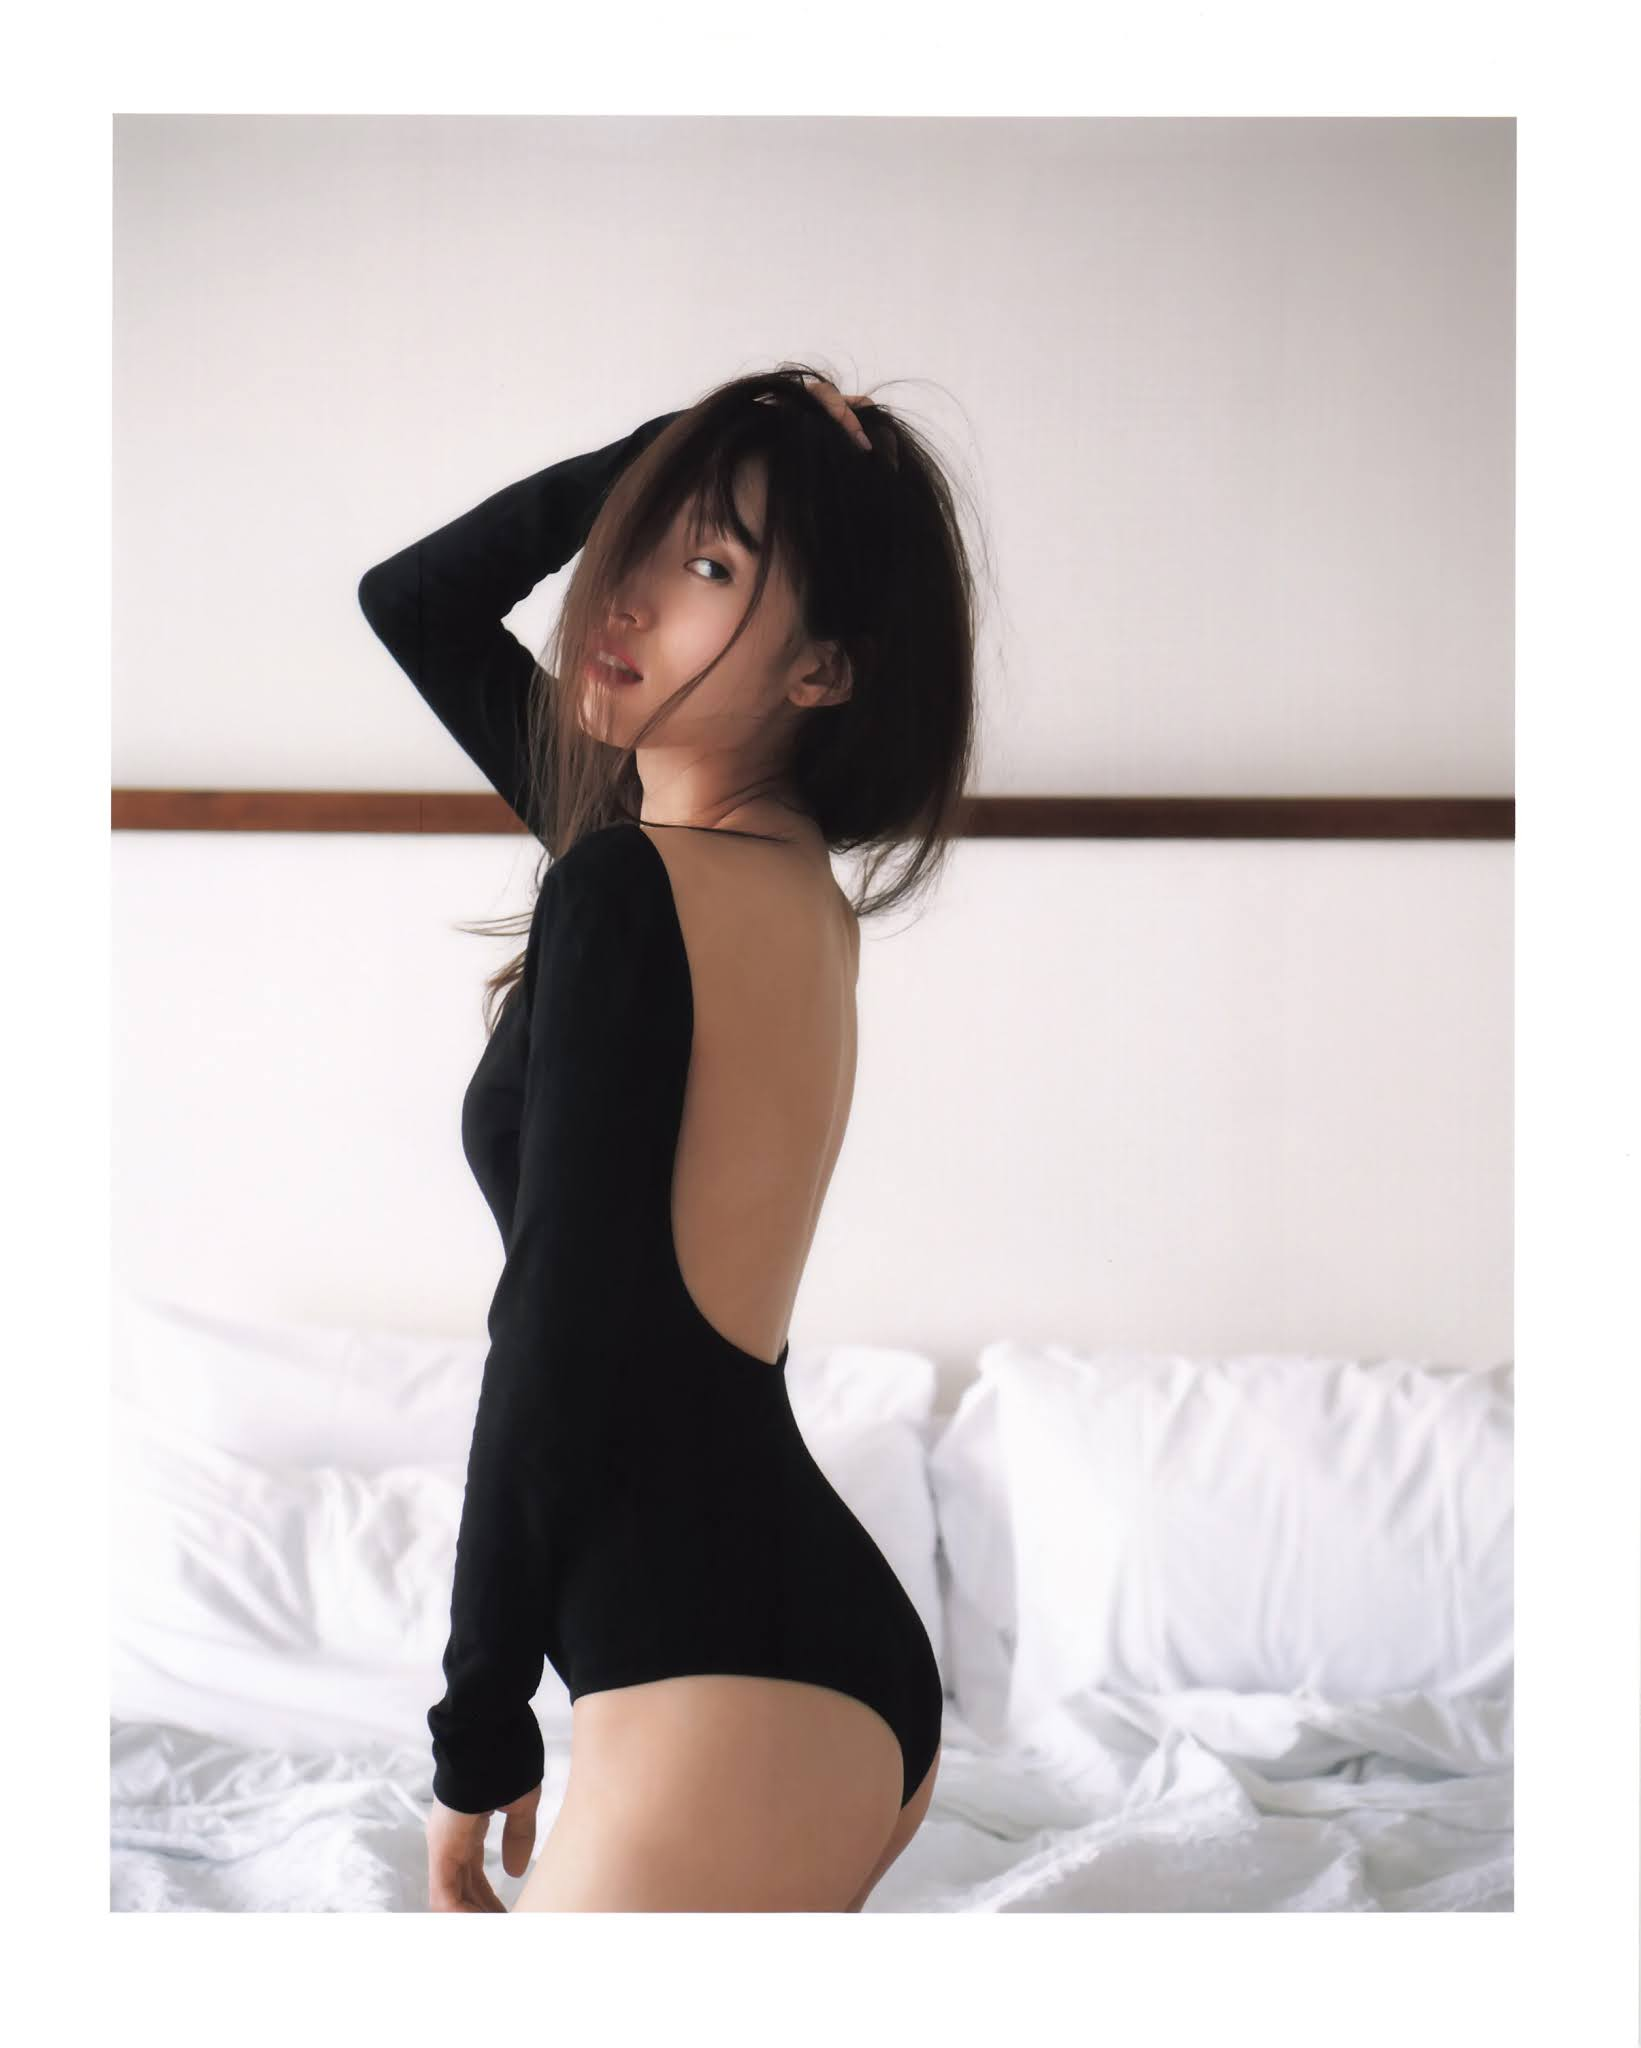 23yearold body fascinated in Hawaii Maho Yamaguchi102